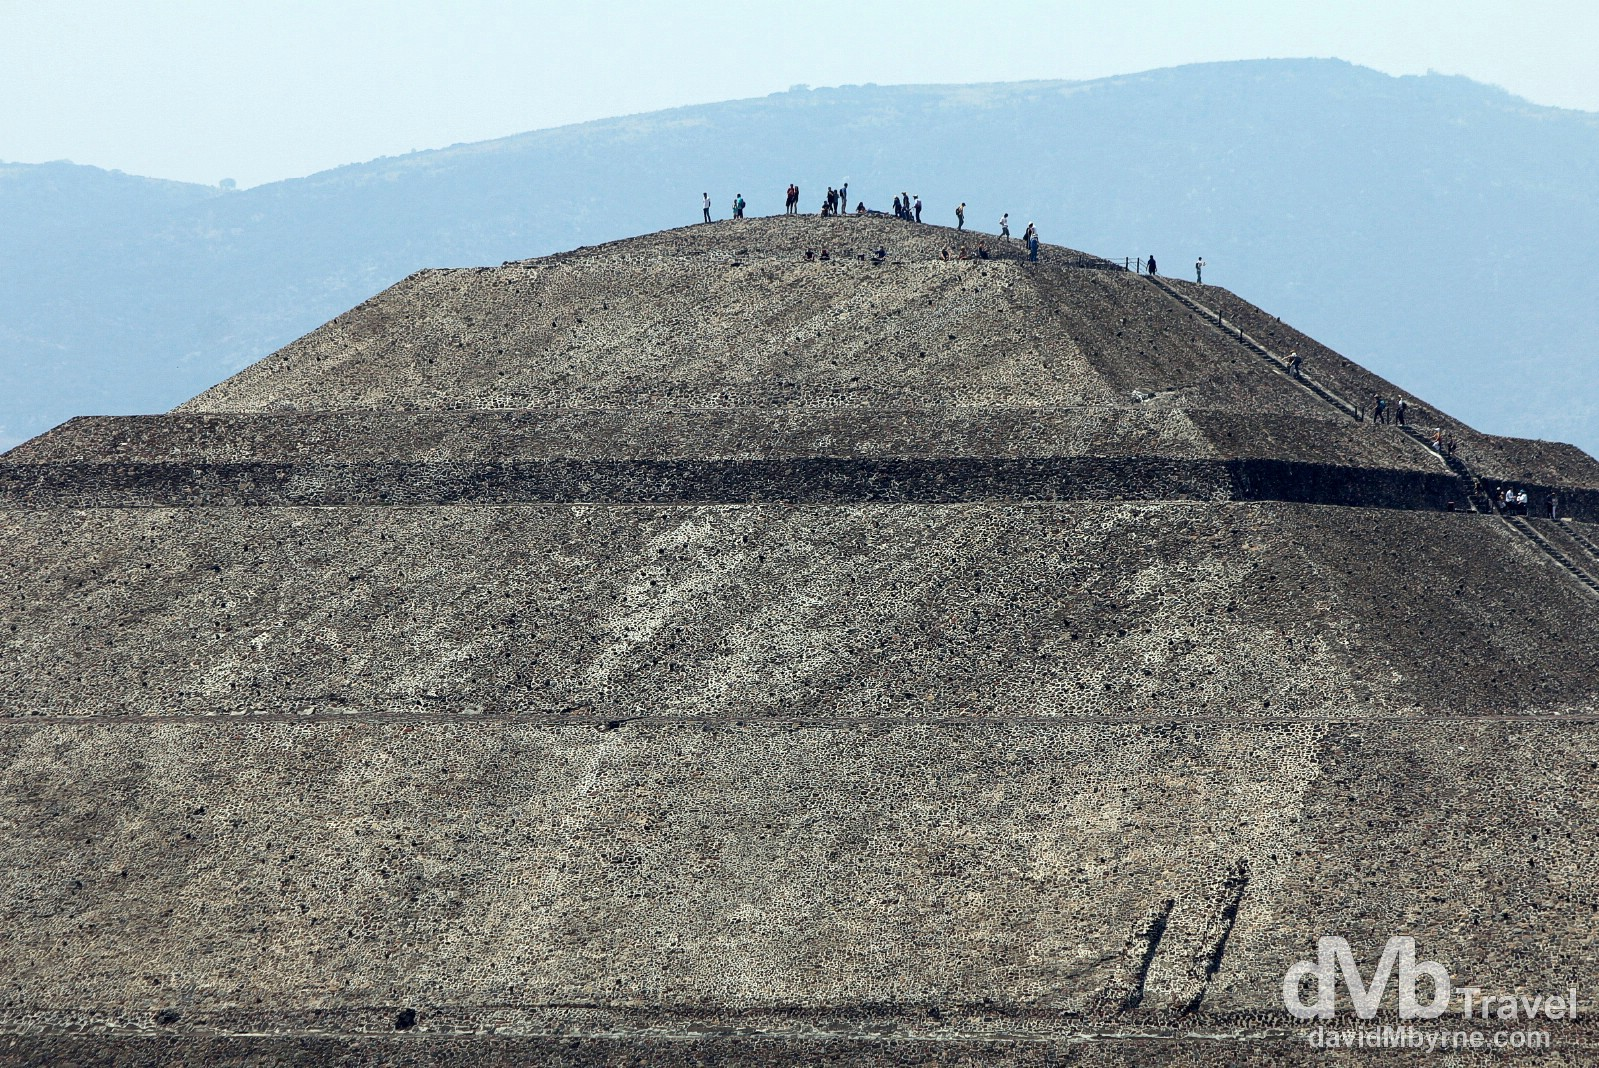 People atop the Piramide del Sol (Pyramid of the Sun) as seen from the slightly smaller Piramide de la Luna (Pyramid of the Moon), Teotihuacan, Mexico. April 29th 2013.